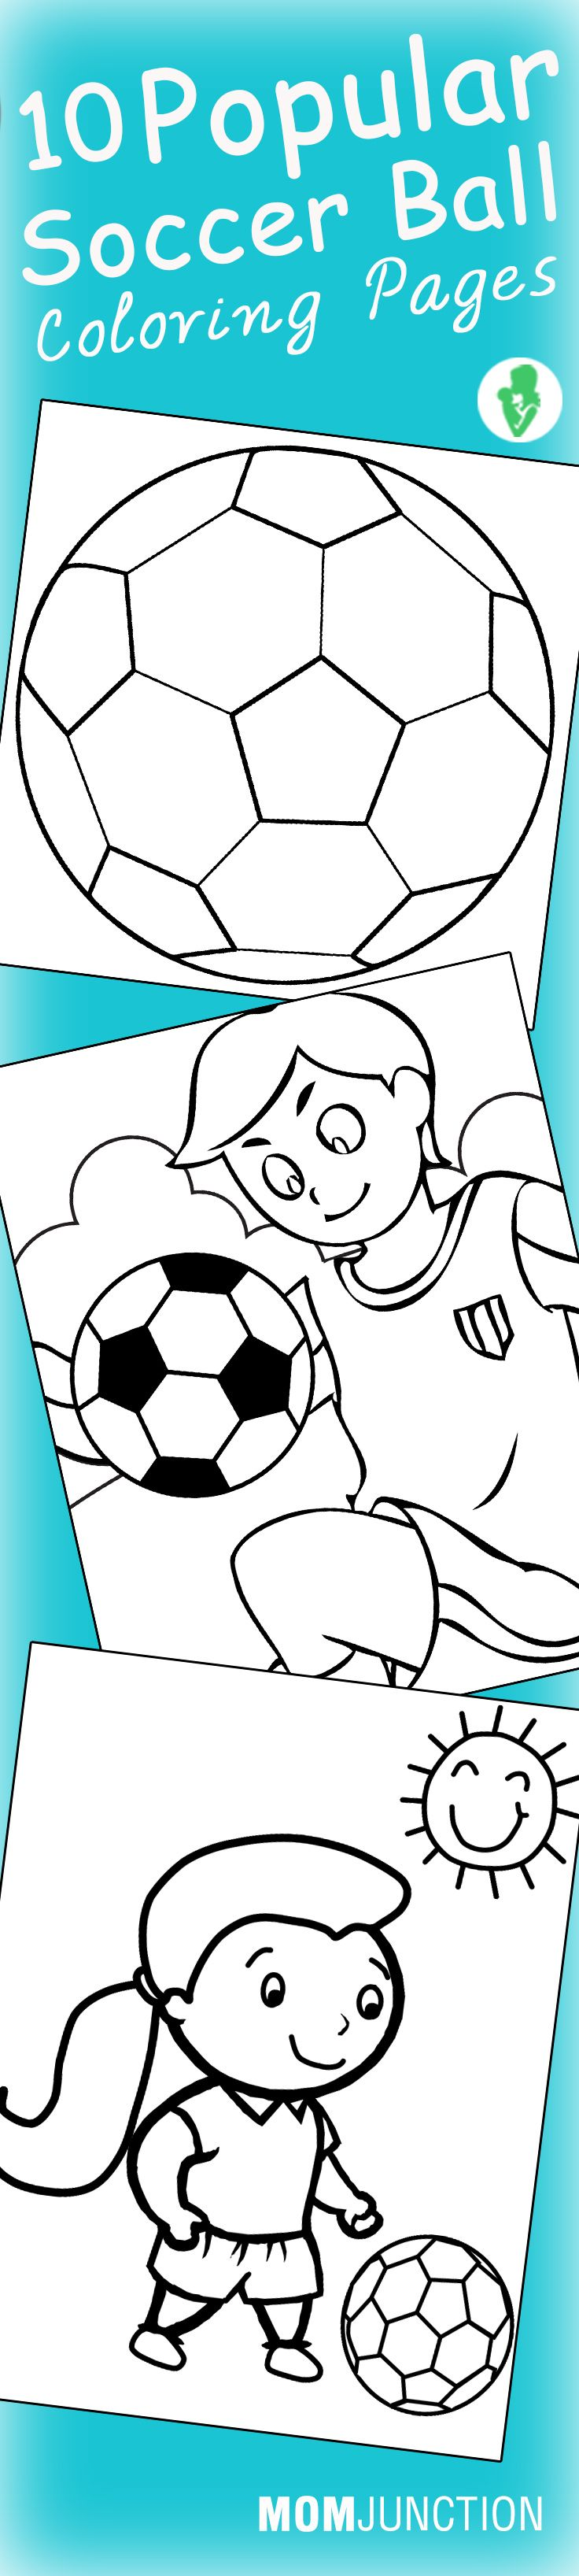 10 Popular Soccer Ball Coloring Pages For Soccer Lover Kids